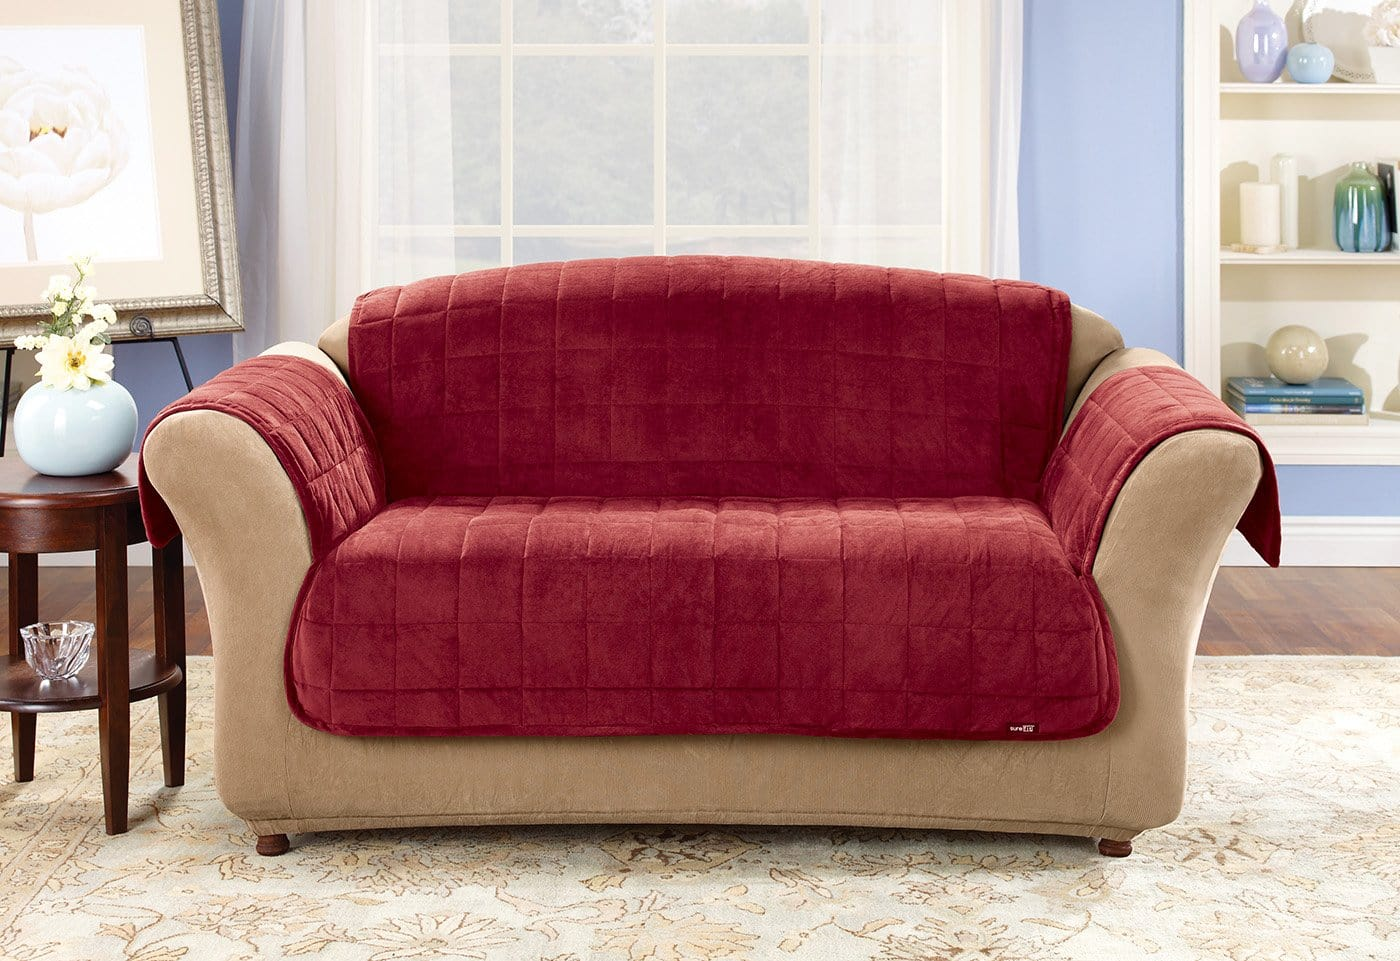 Deluxe Comfort Sofa Furniture Cover With Arms Microban® Antimicrobial Pet Furniture Cover Machine Washable - Sofa / Burgundy